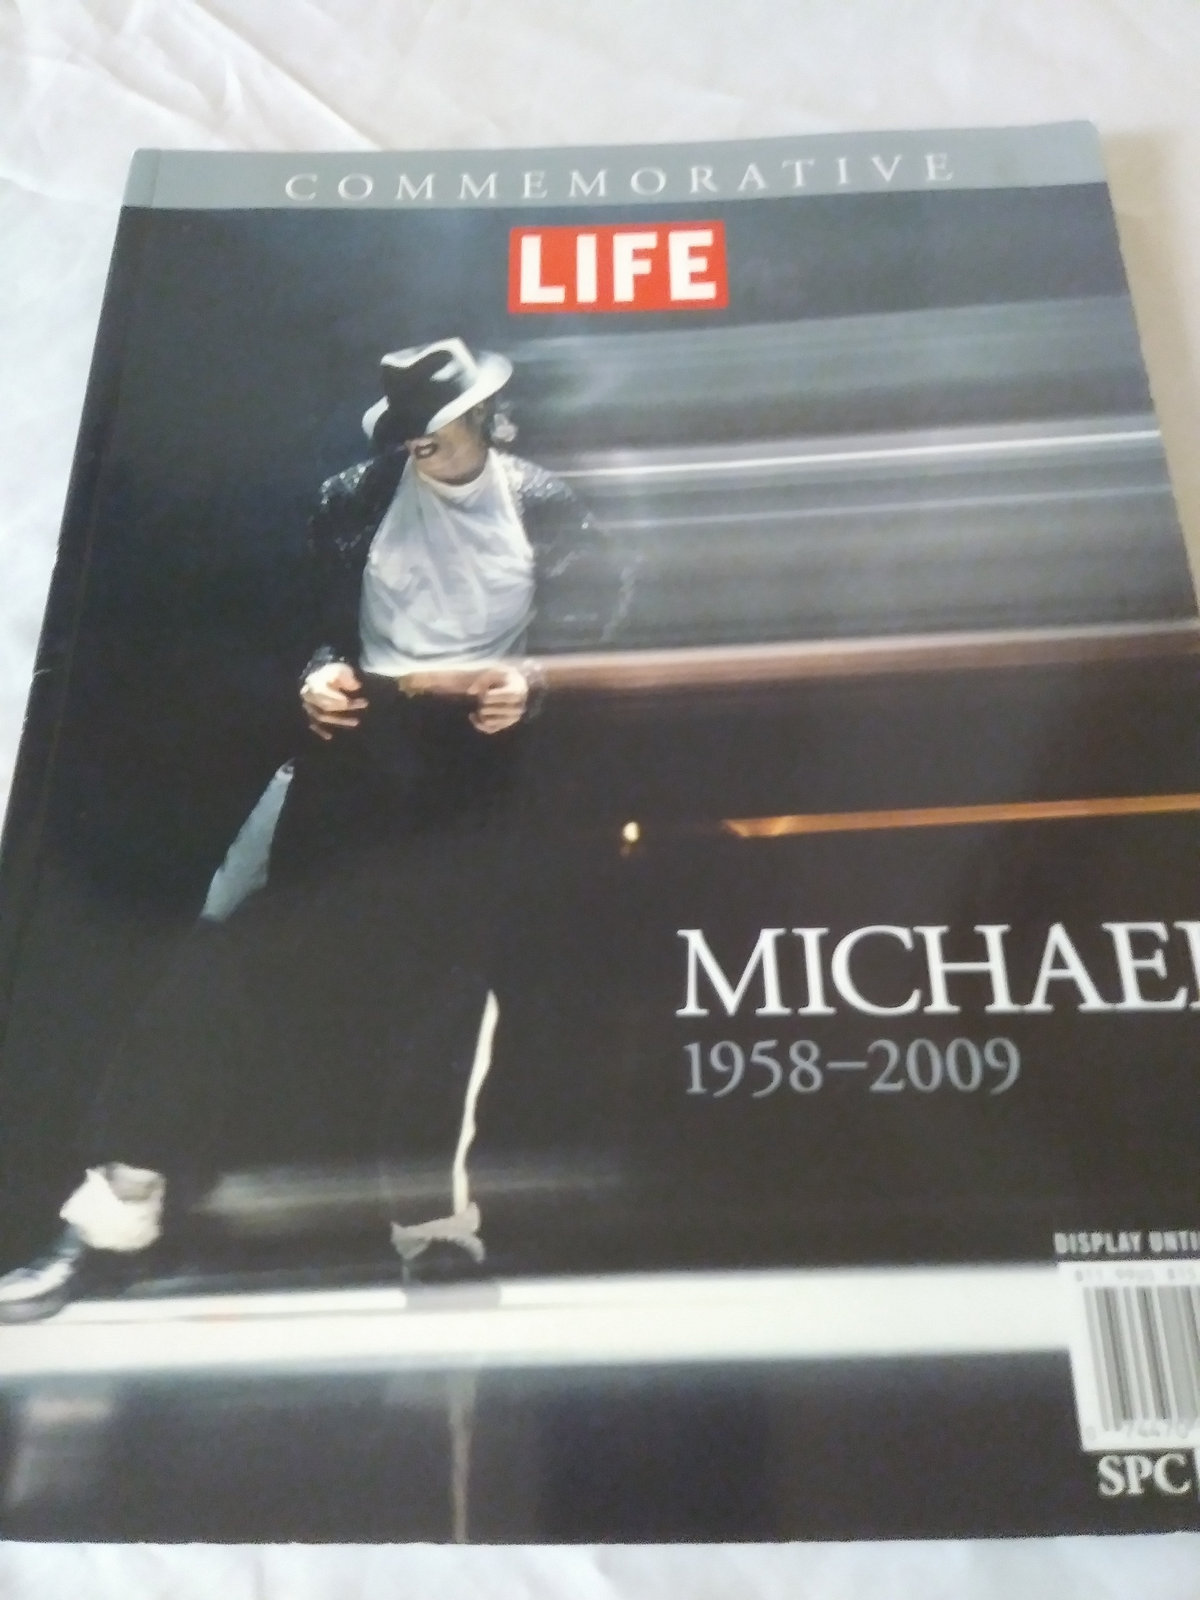 Commemorative Life Tribute Special By Editors of Life Michael 1958-2009 magazine